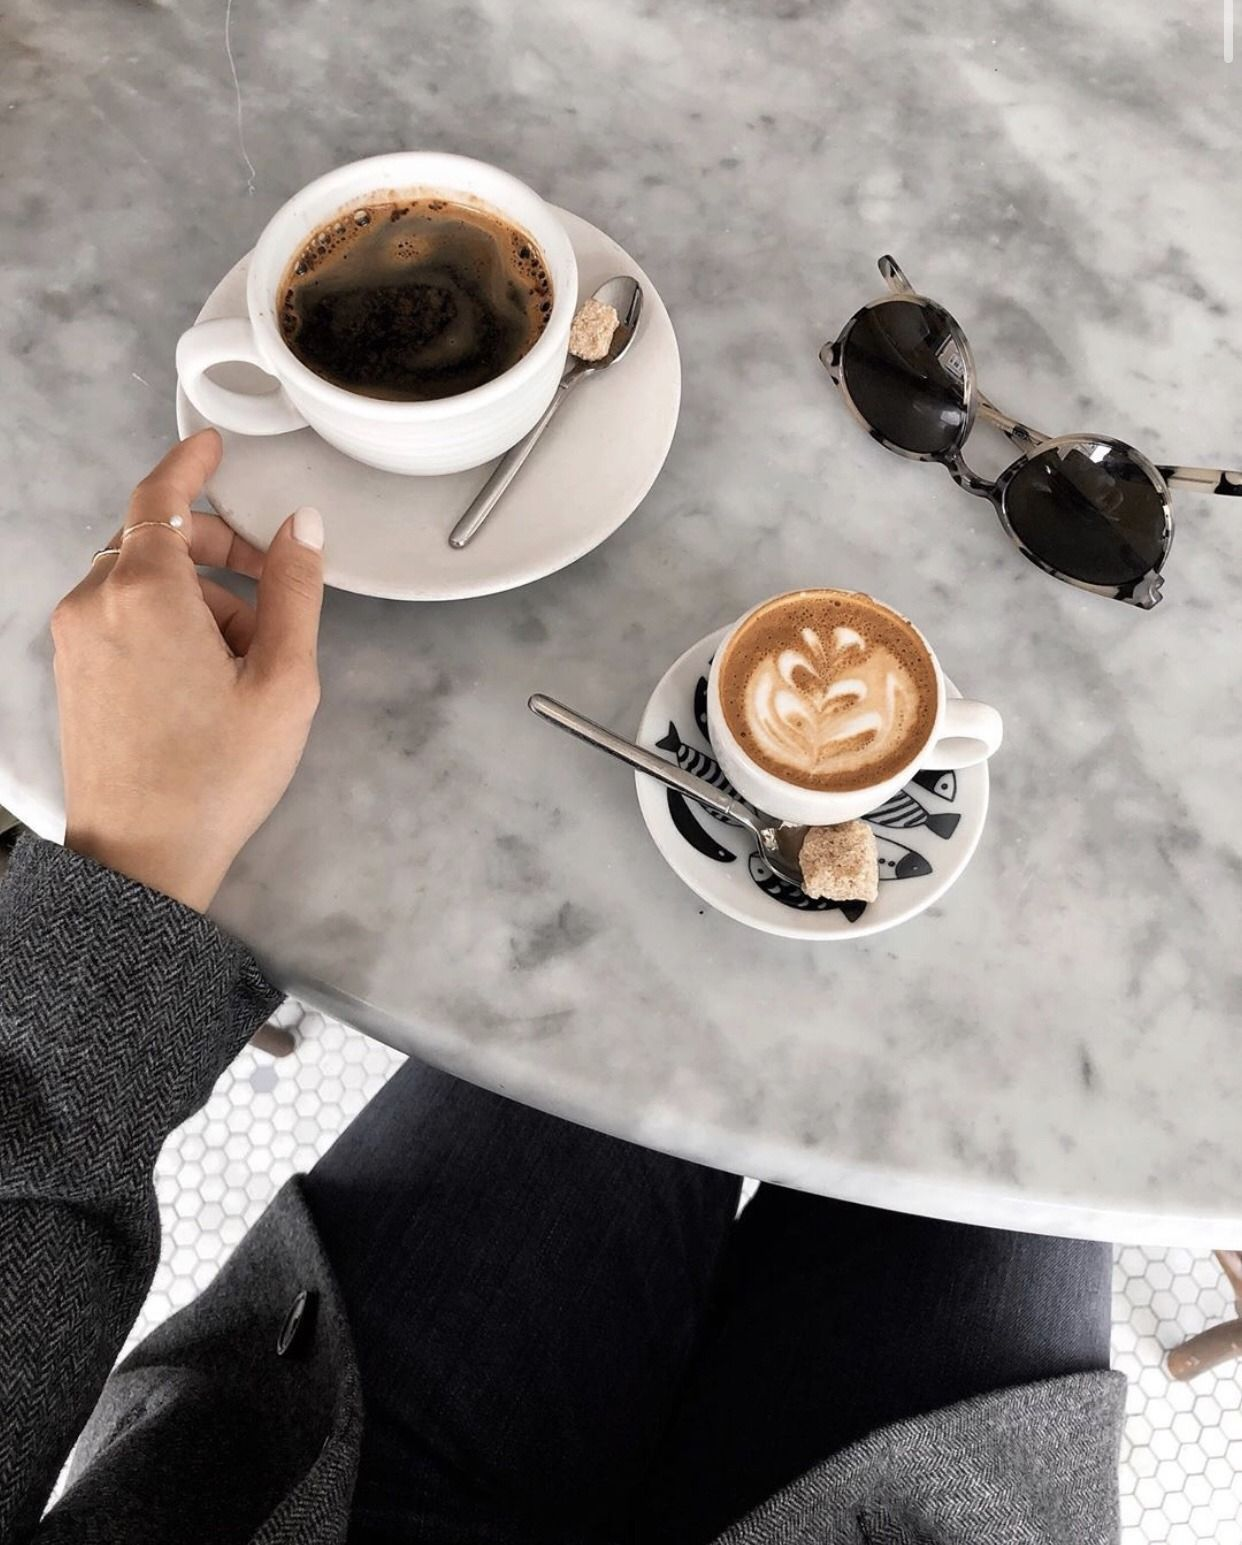 My Love Affair With Coffee Yay Janelle Coffee Shop Aesthetic Food French Roast Coffee